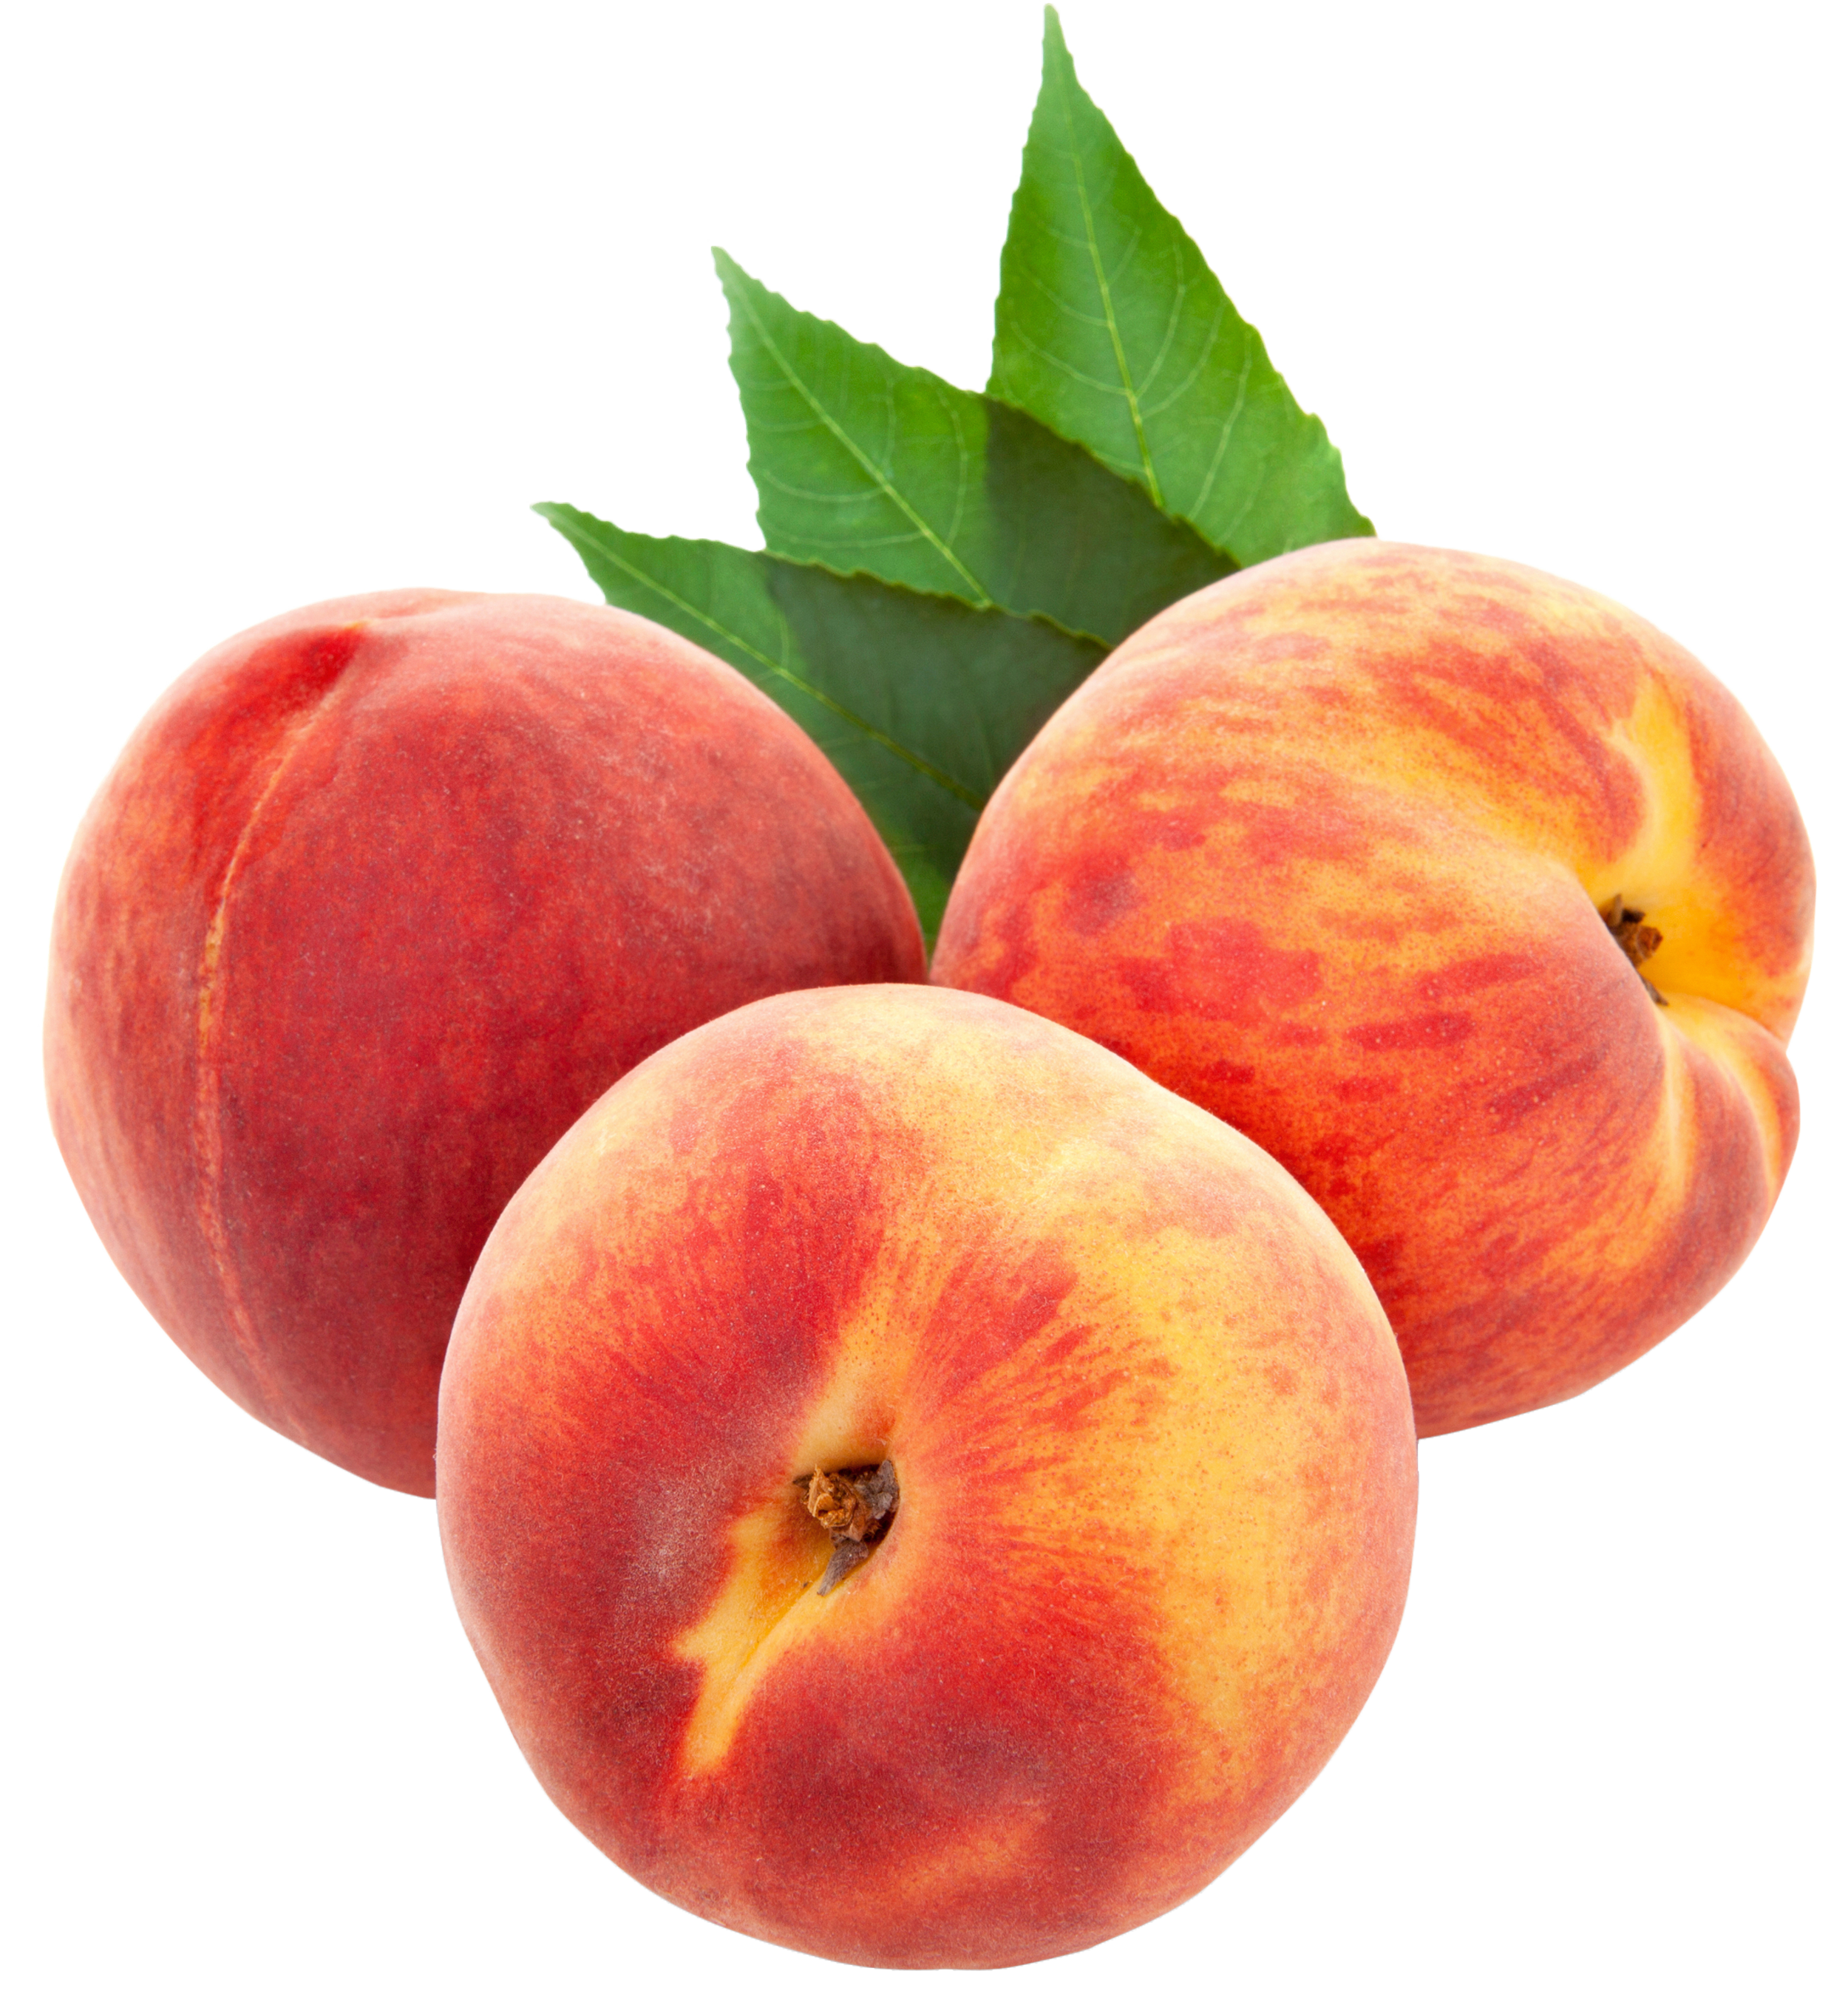 Peach clipart for you image